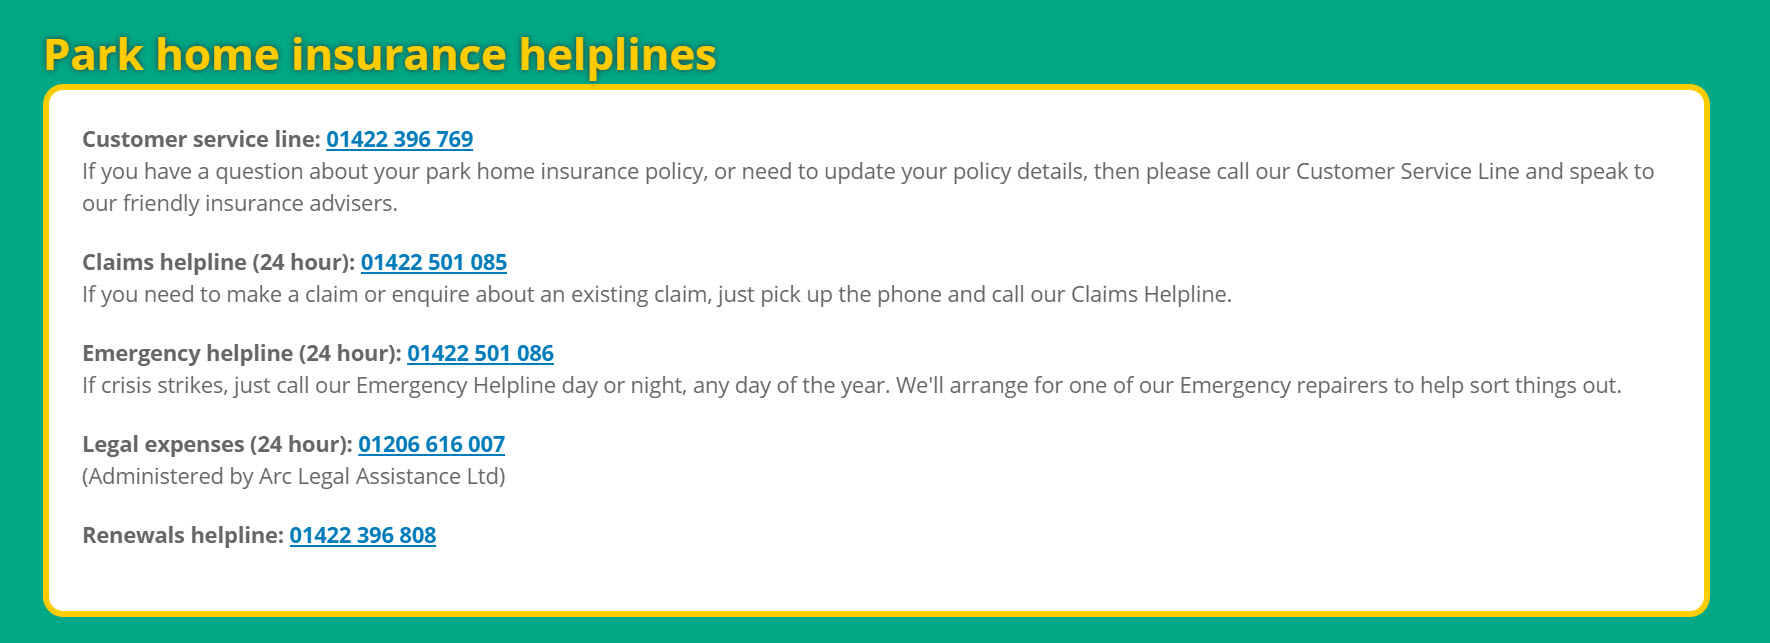 Park home insurance helplines